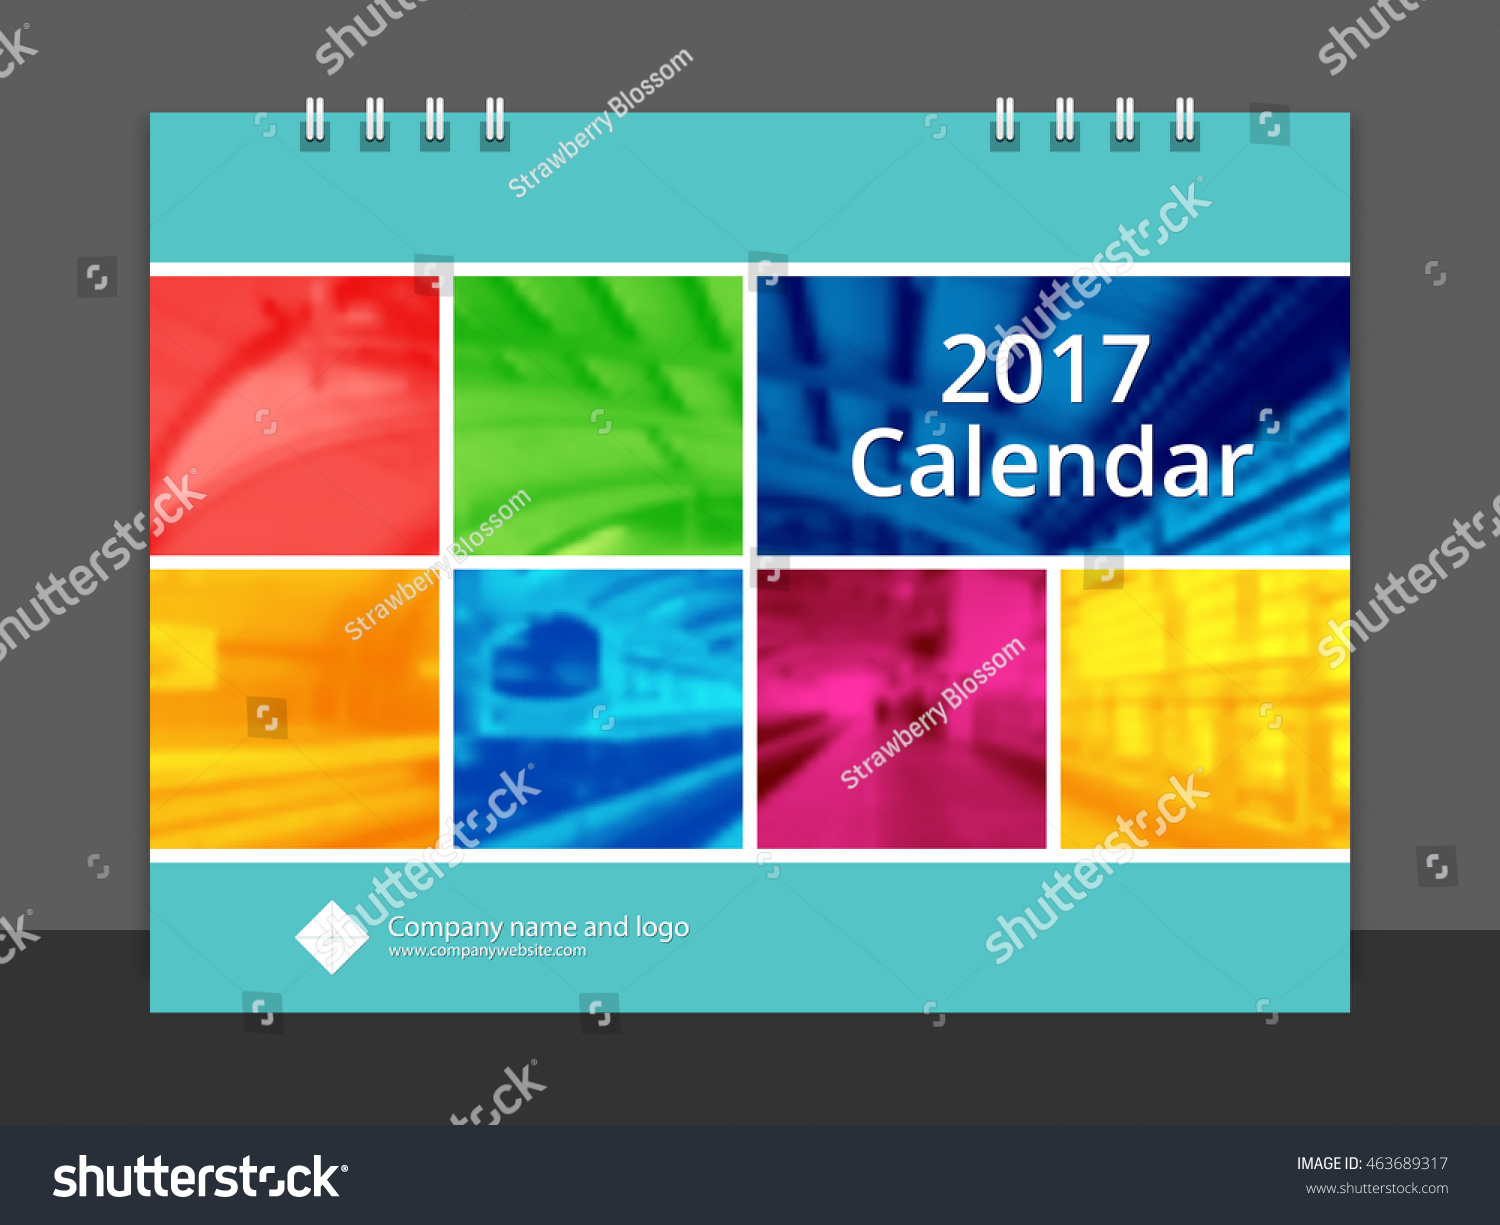 Calendar Cover Design 2014 : Desk calendar font cover design stock vector